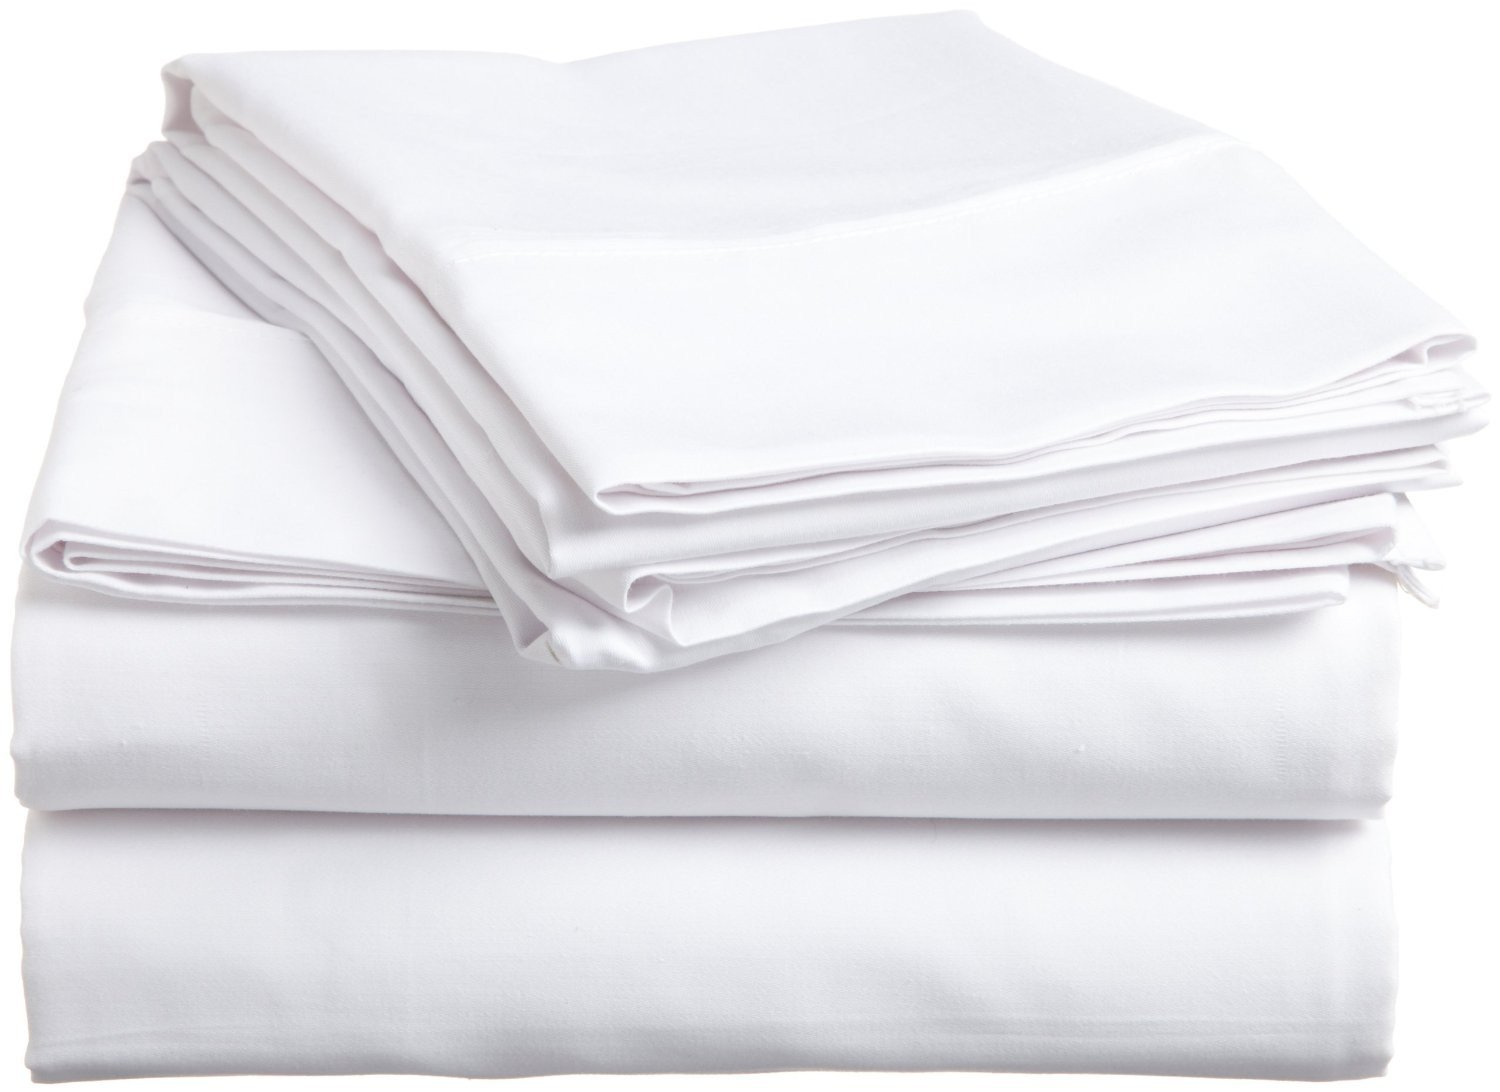 JMR Flat Draw Bed Sheets Muslin T130 Cotton Blend (54x90, white 6 piece)